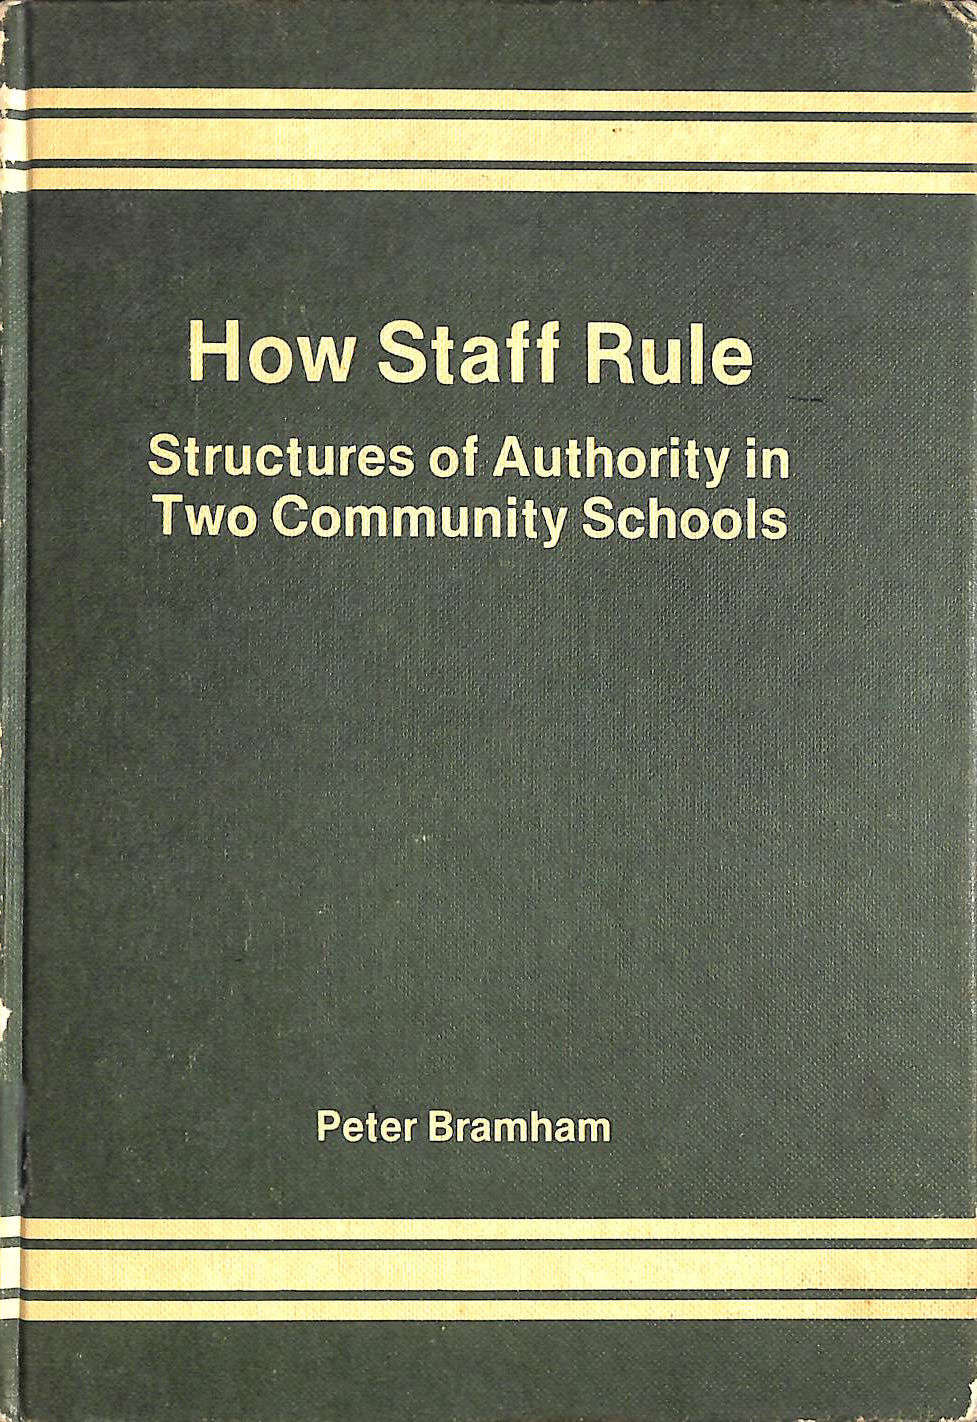 Image for How Staff Rule: Structures of Authority in Two Community Schools